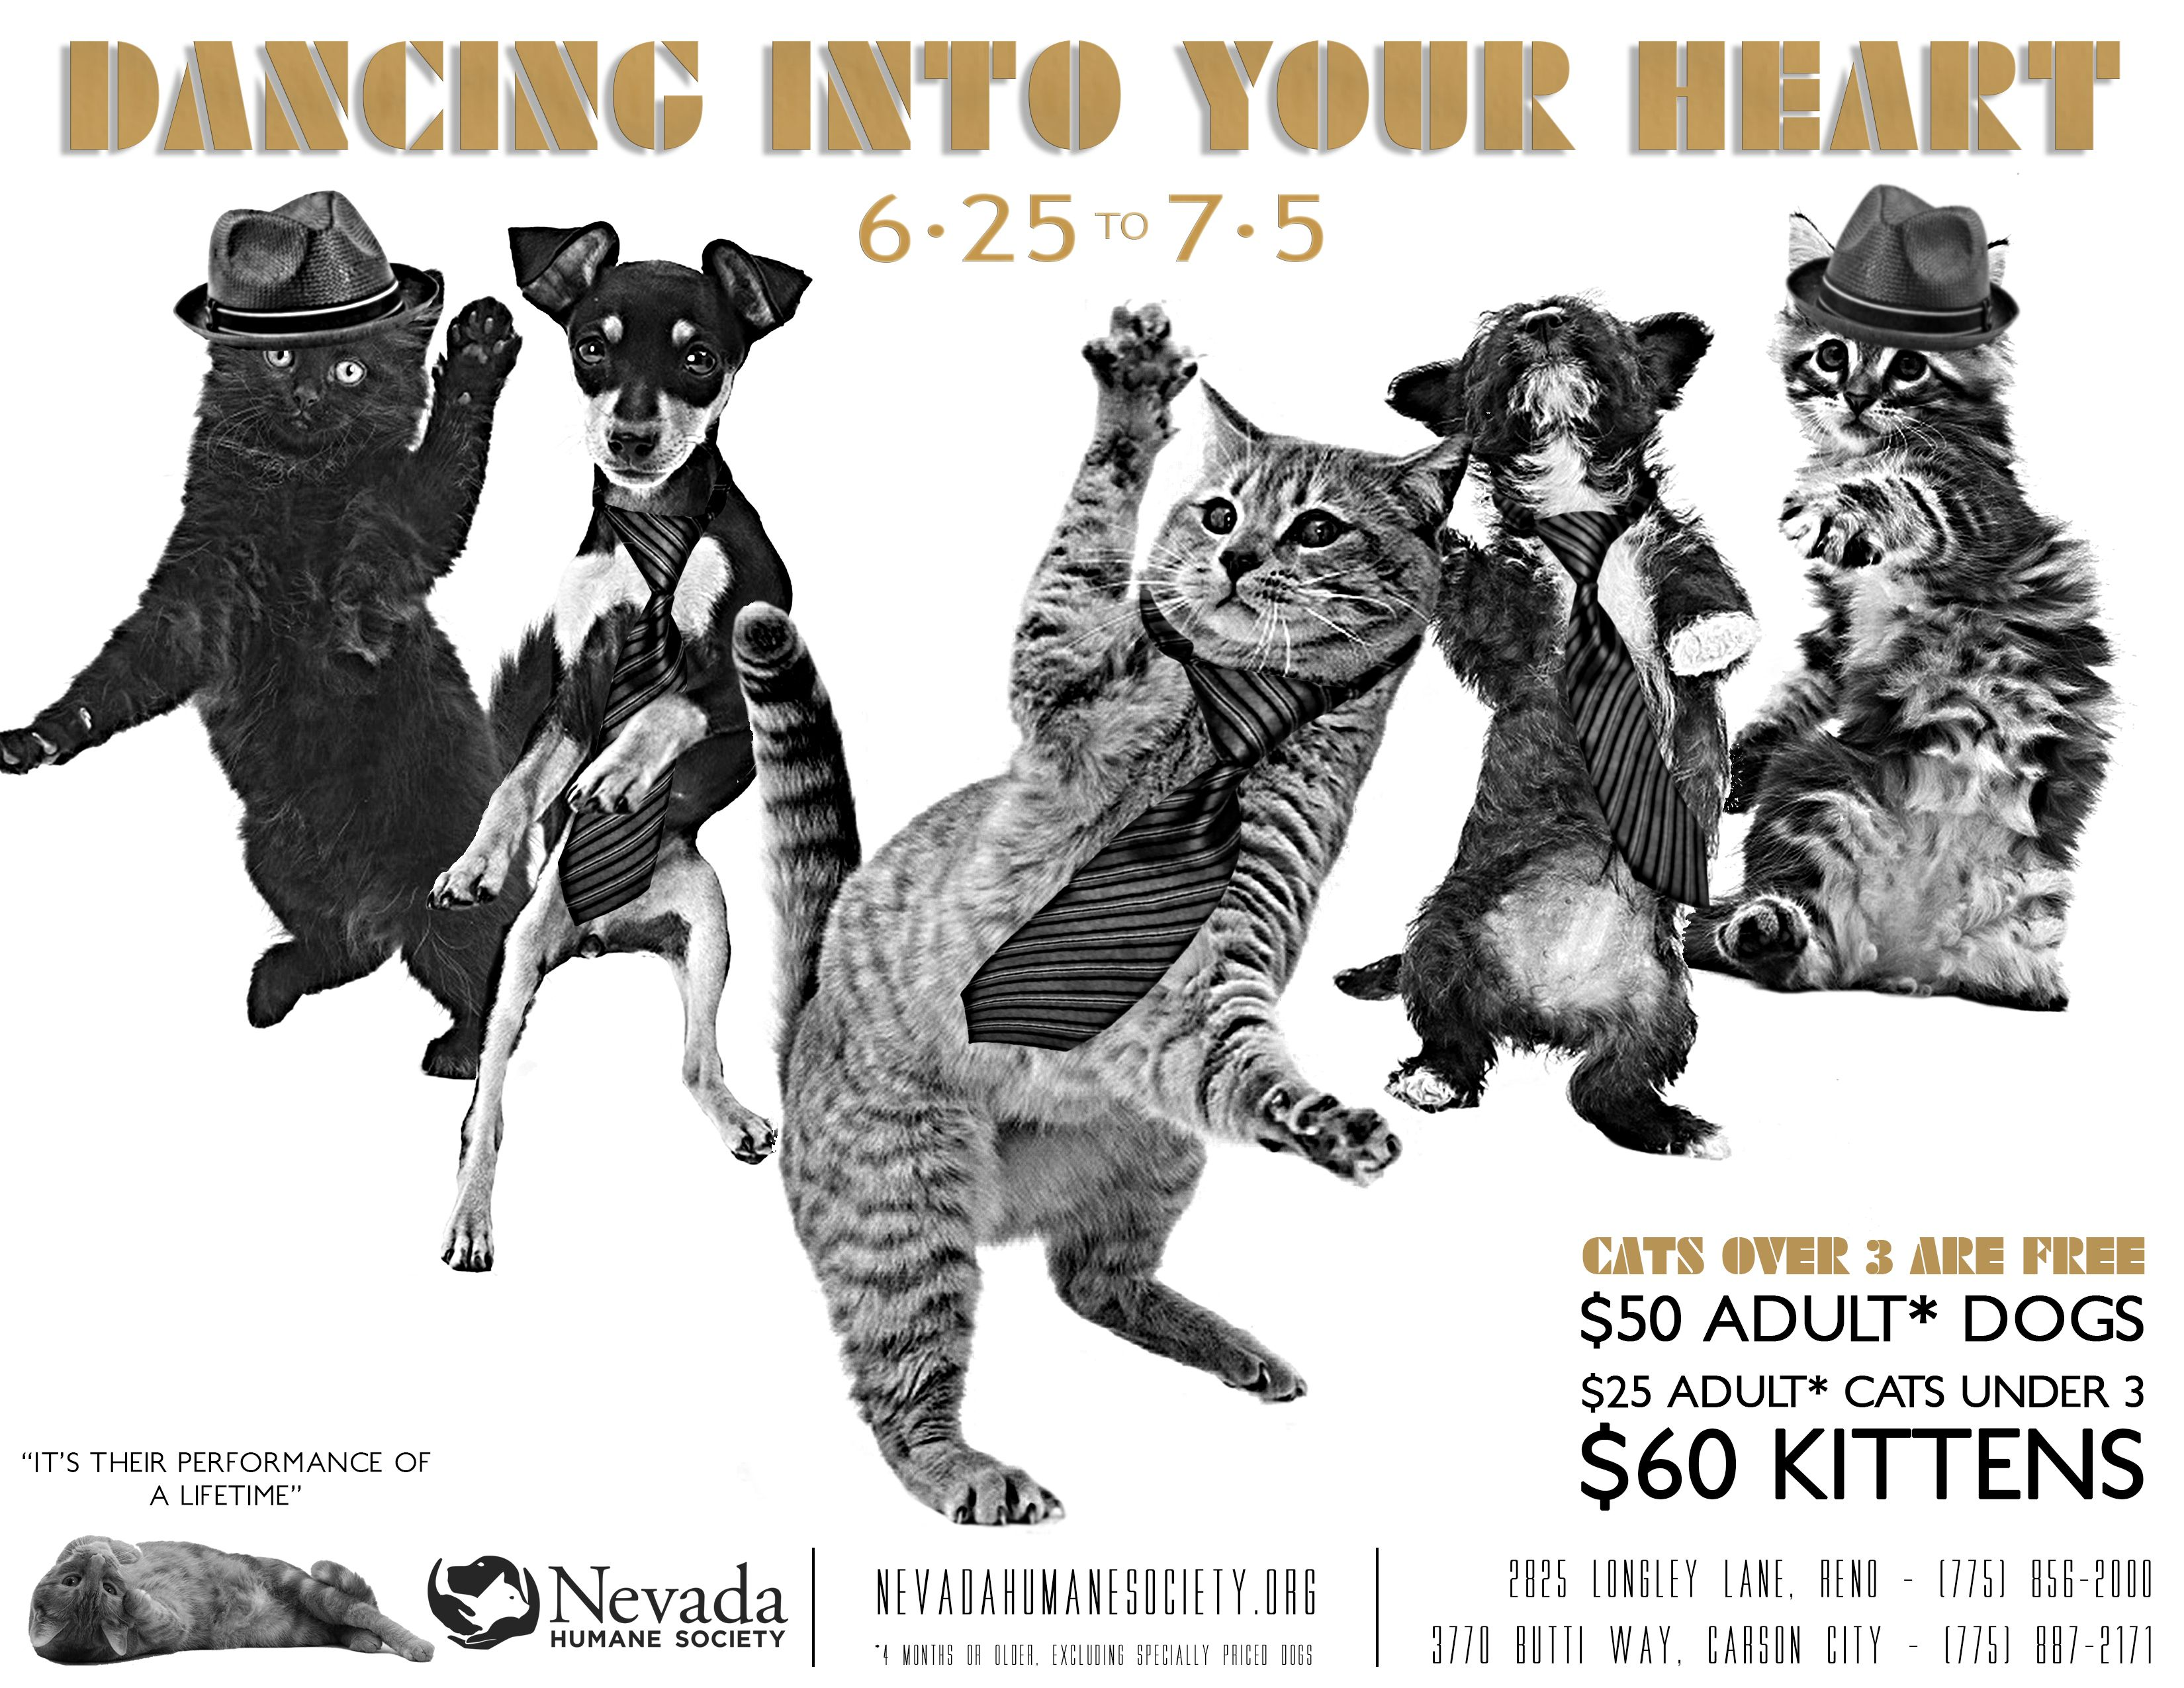 In Honor Of Magic Mike Xxl We Ve Got Dogs And Cats Dancing Into Your Hearts And Homes Will You Tell Your Friends And Dancing Cat Magic Mike Xxl Adult Dogs